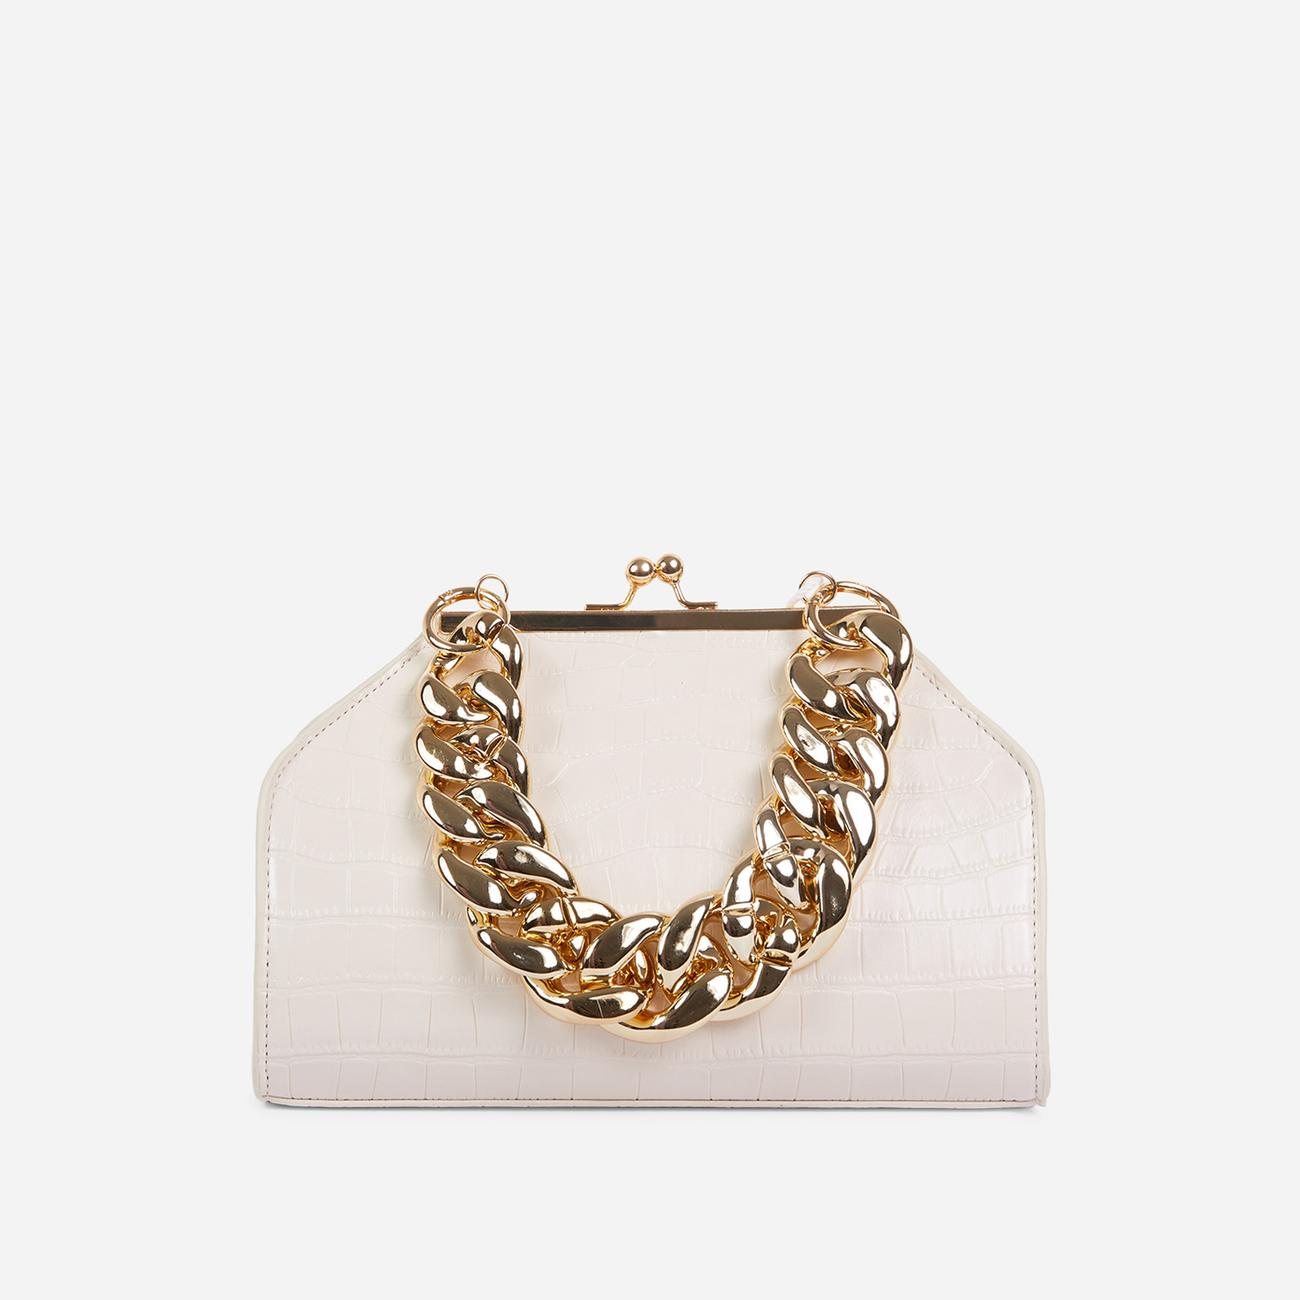 Tuco Chunky Chain Detail Boxy Grab Bag In White Croc Patent Image 1